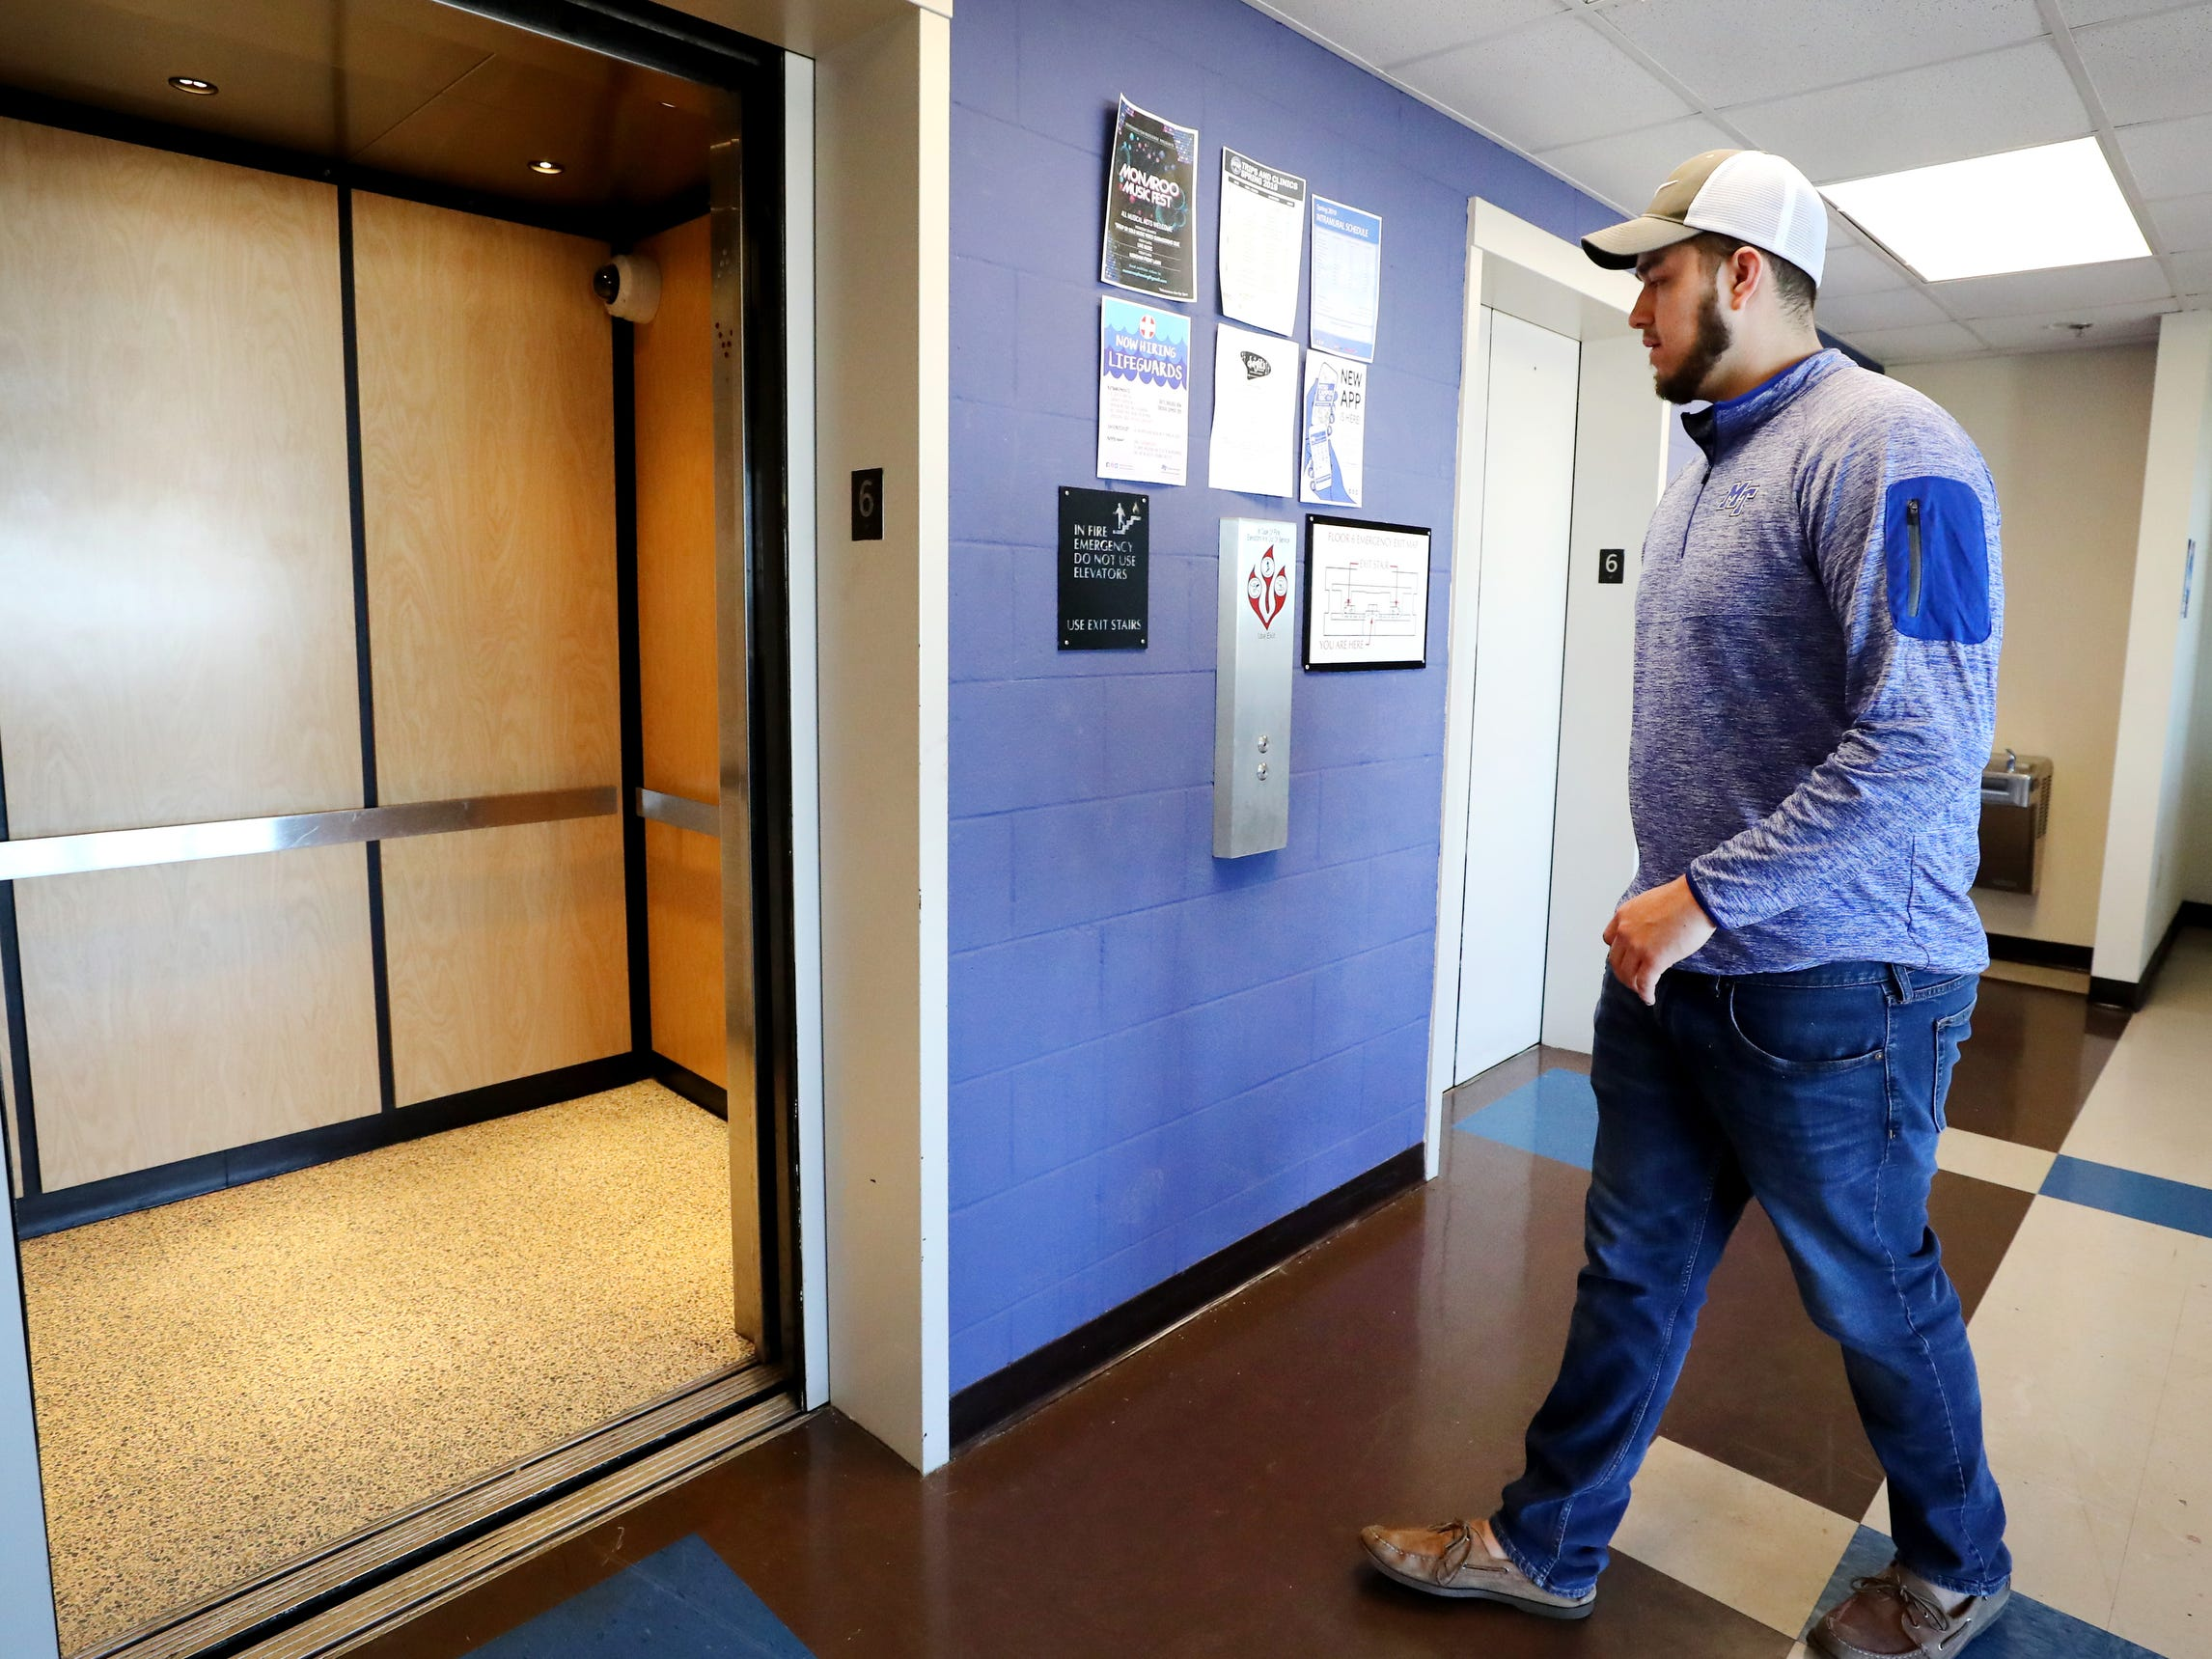 Isaac Plata gets on the elevator in Jim Cummings Hall, at MTSU on Friday, March 22, 2019.